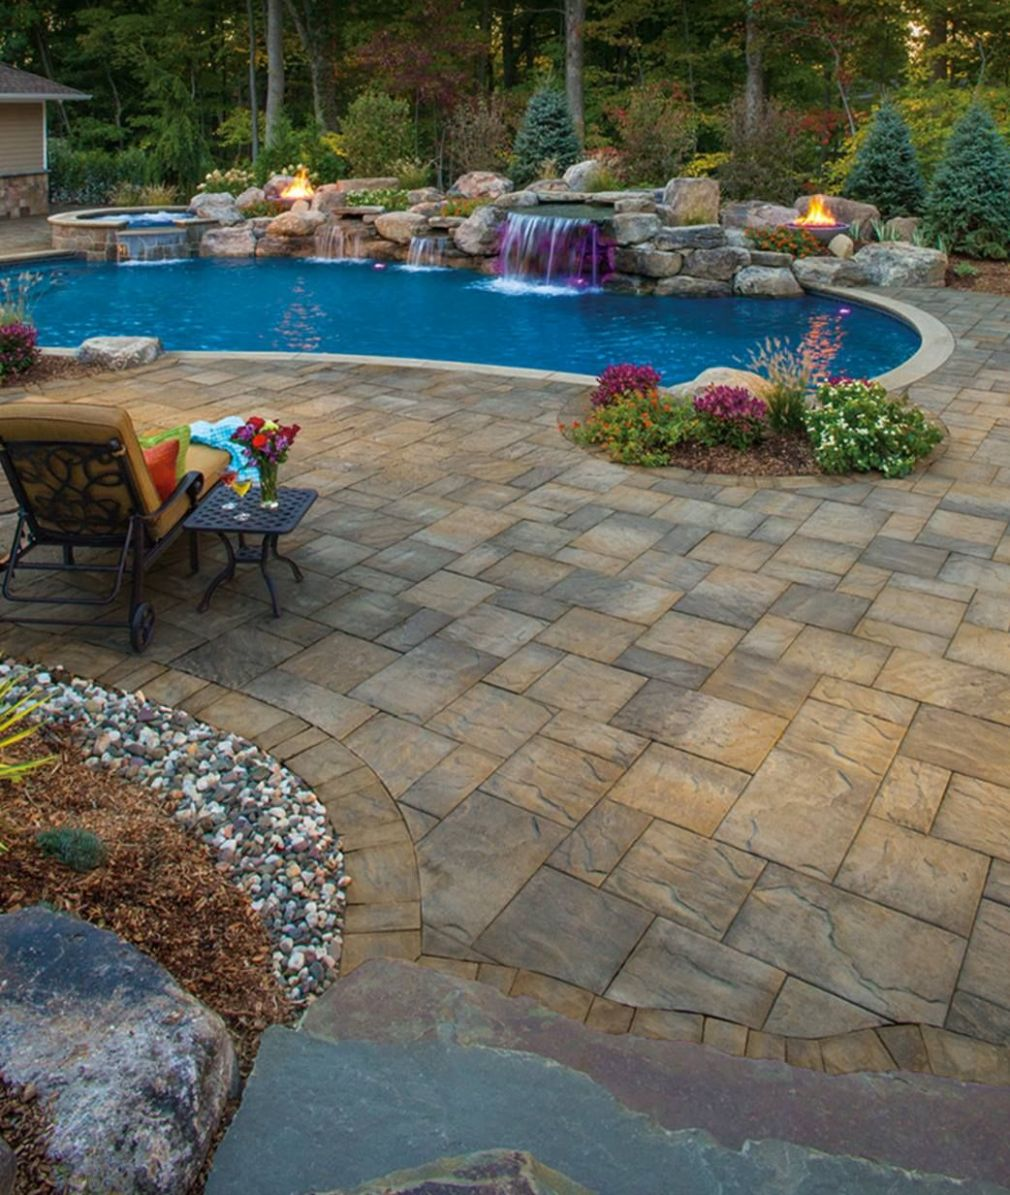 Beauty is in the eye of the beholder. Update your outdoor pool ..